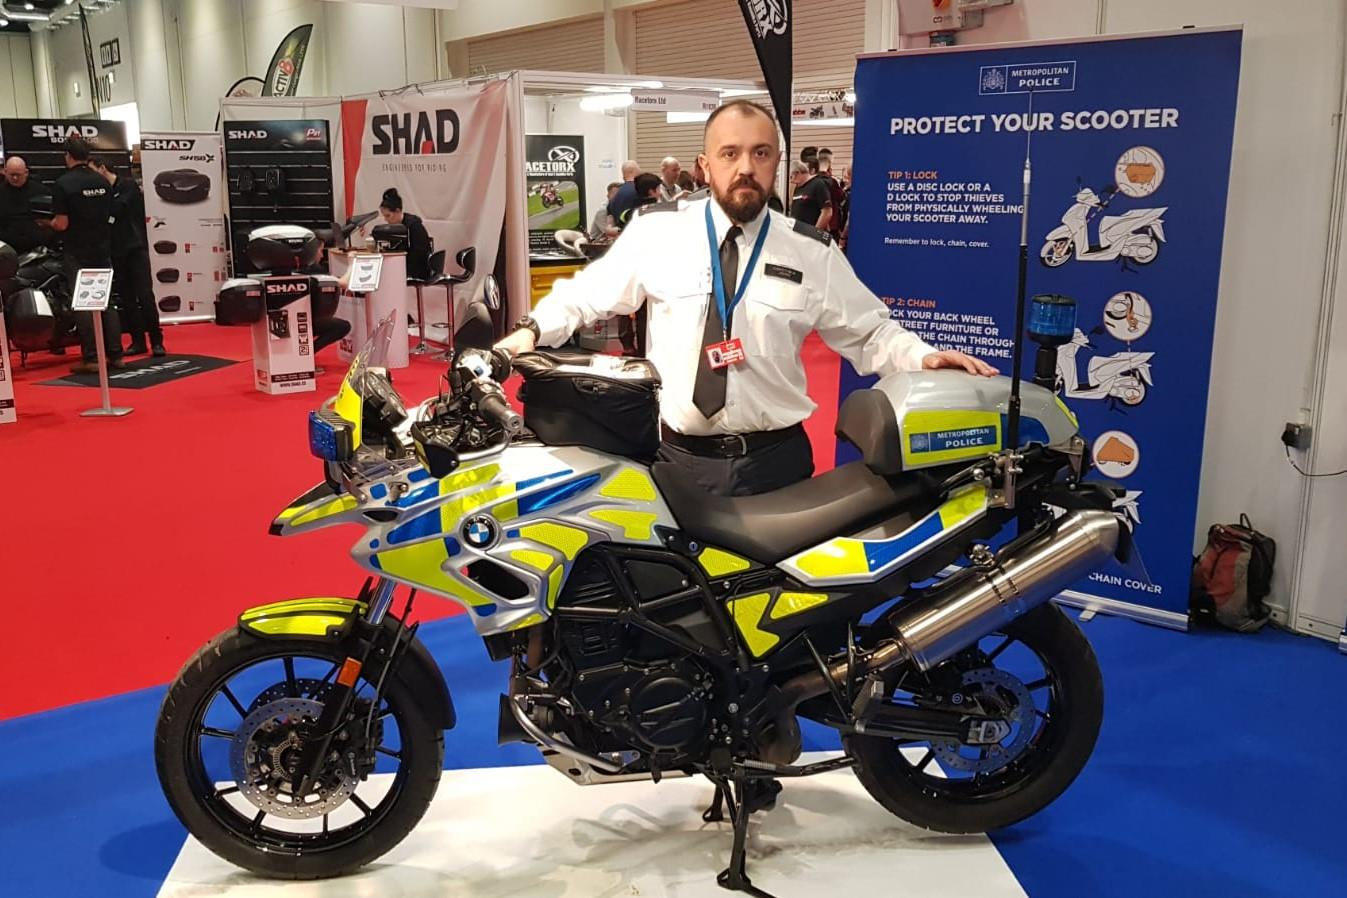 Met Police on motorcycle theft